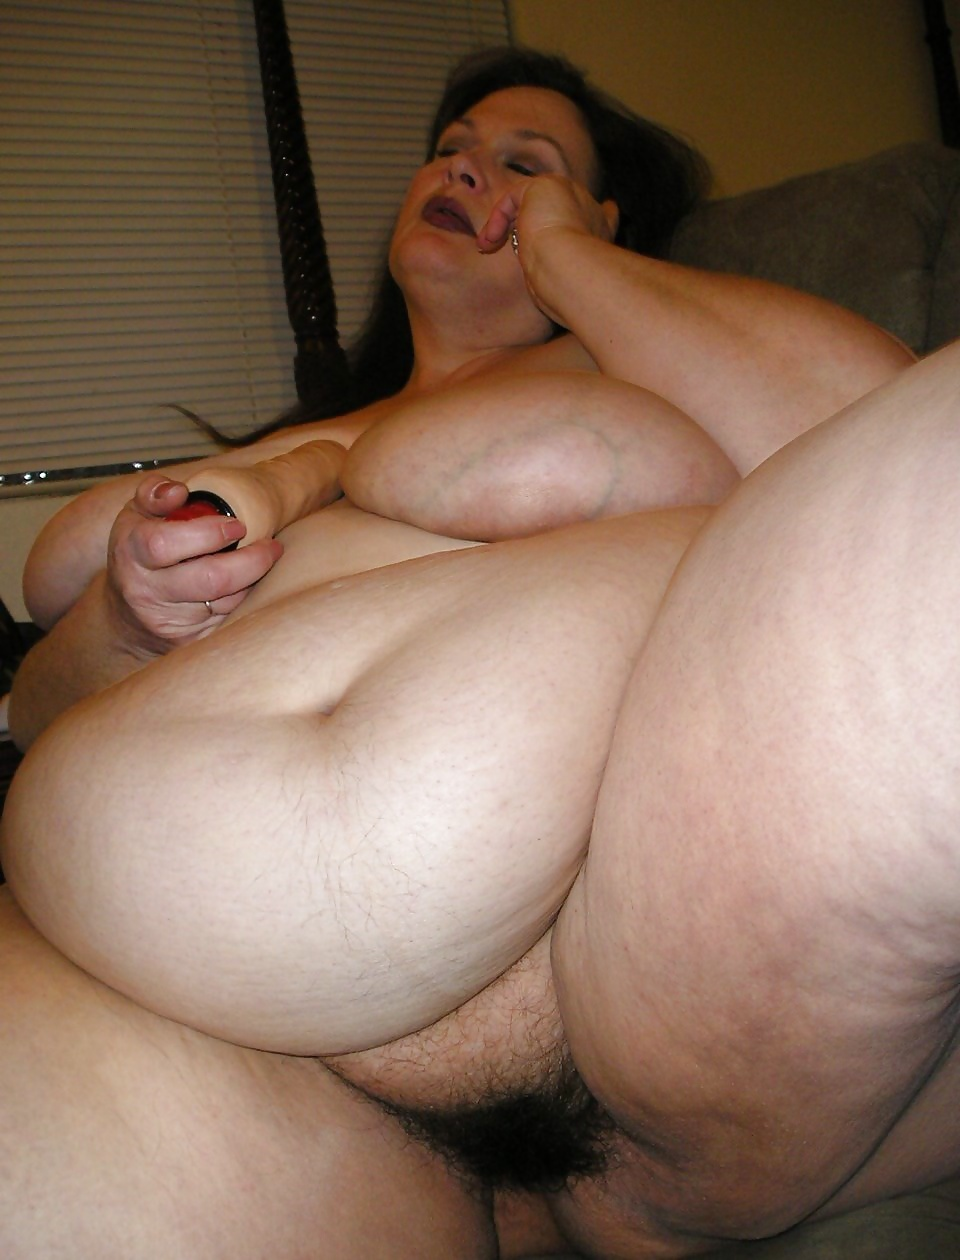 Ssbbw porn galleries girl